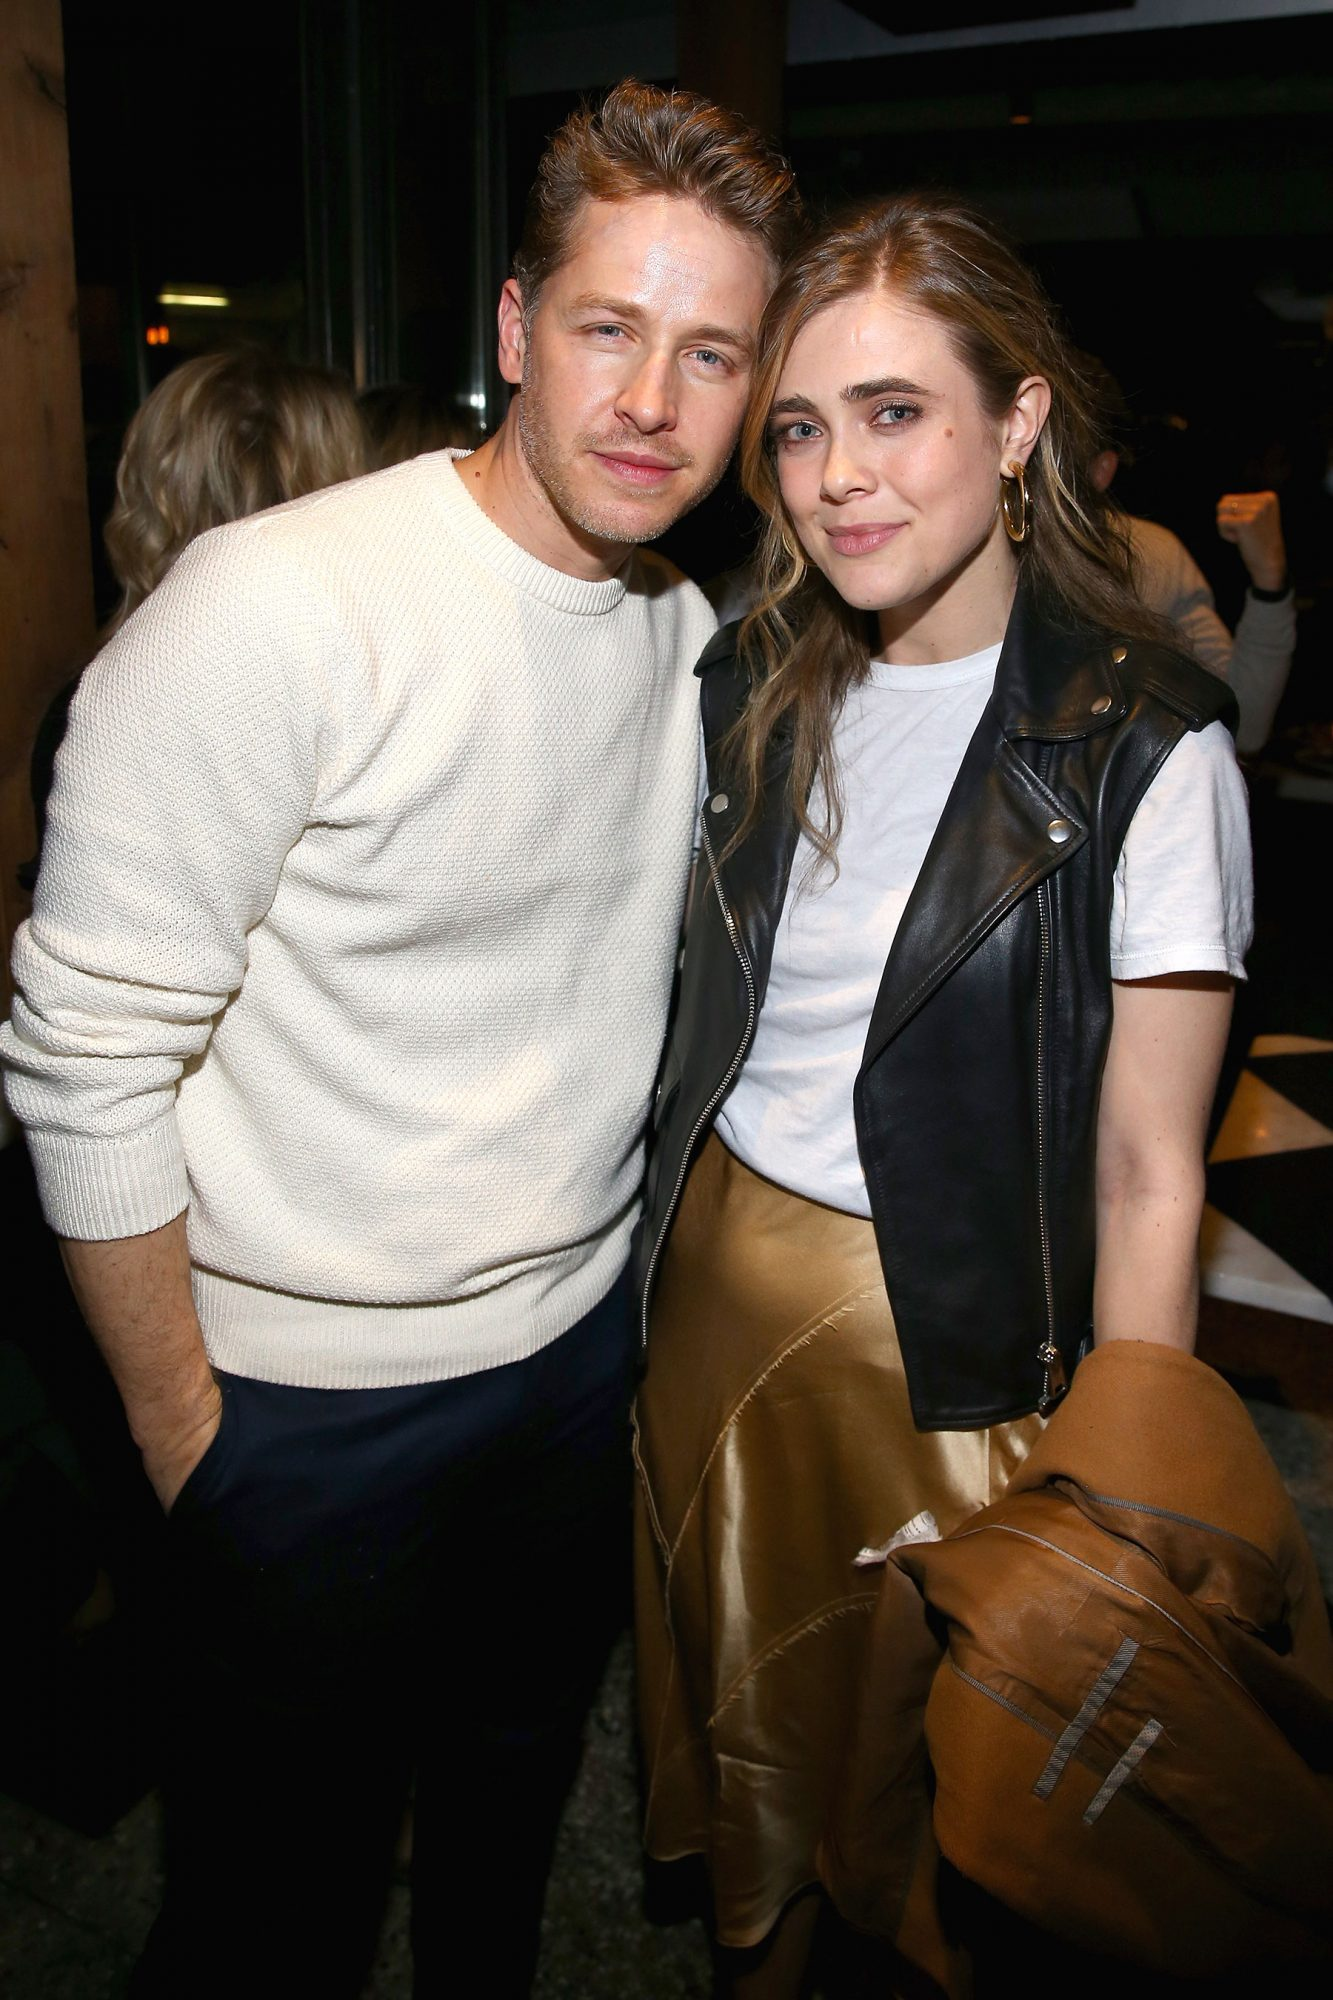 Manifest costars Josh Dallas and Melissa Roxburgh at the SCAD aTVfest and Entertainment Weekly party at Lure